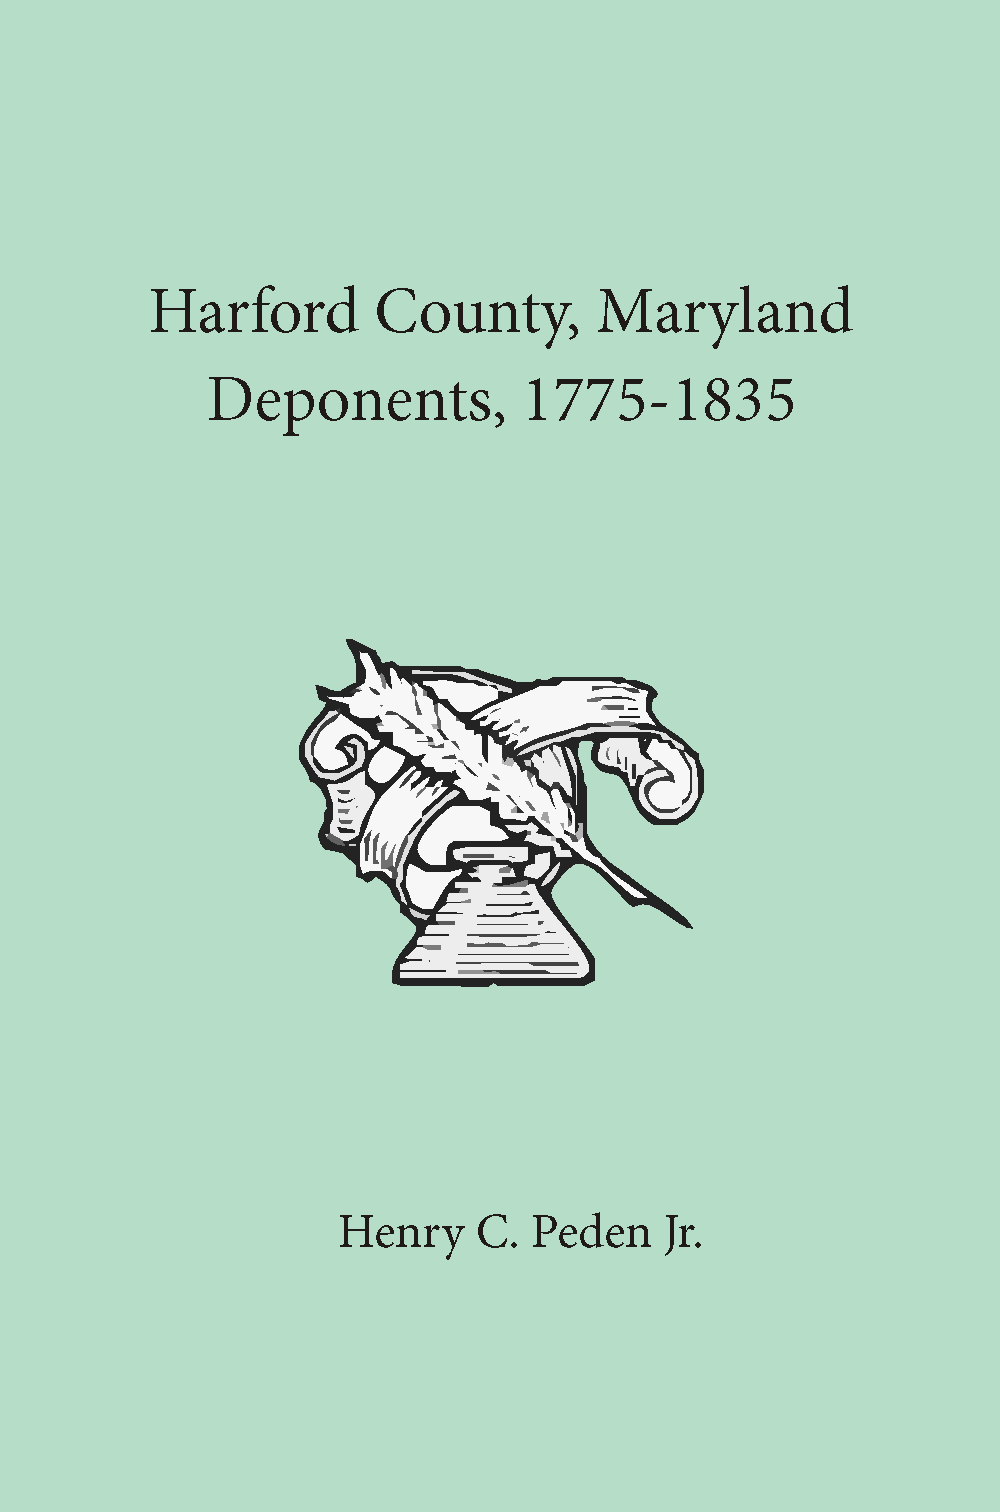 Harford County, Maryland Deponents, 1775-1835